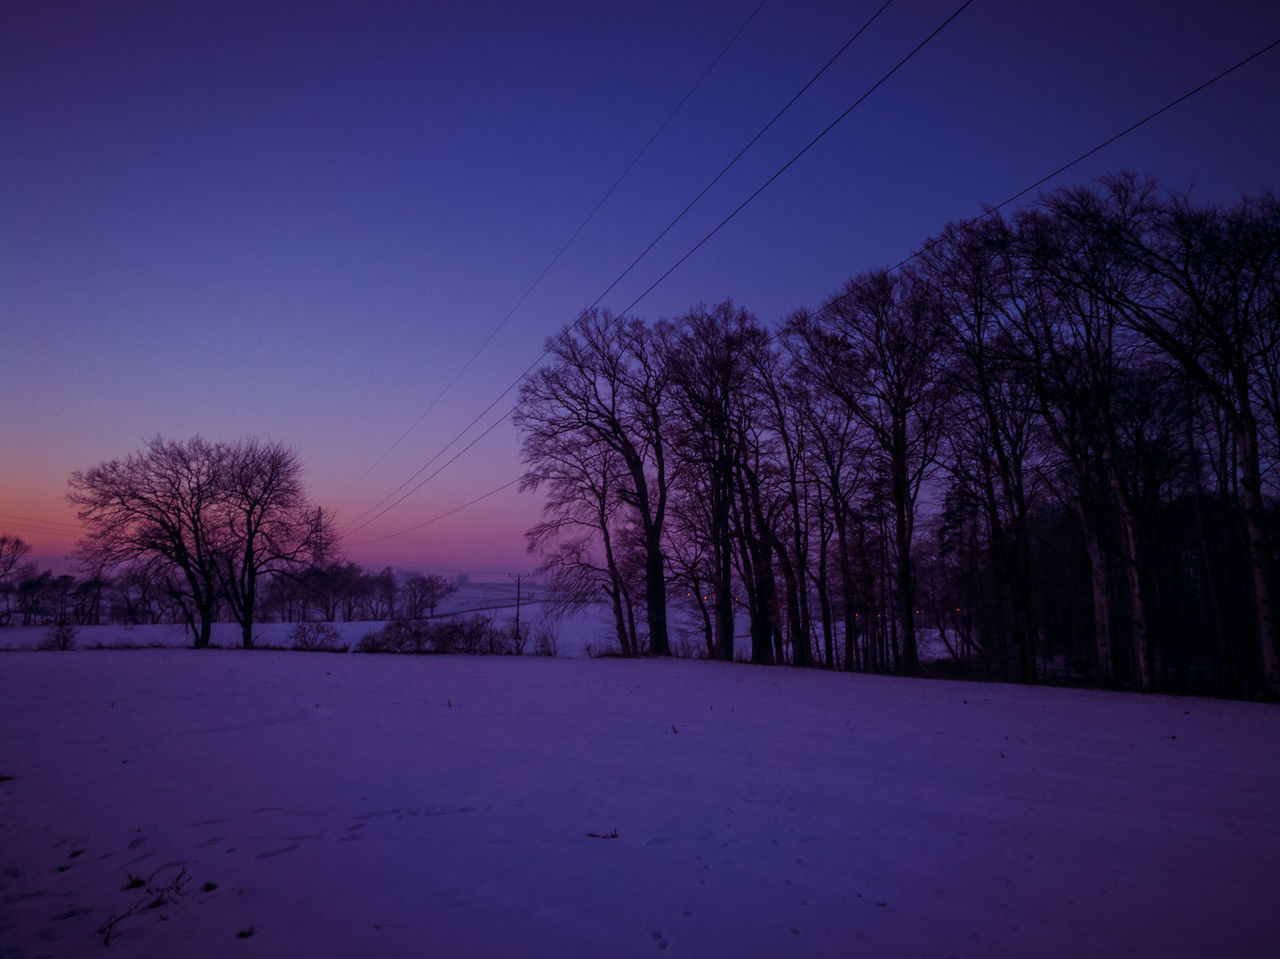 Winter Nature No People Snow Tree Landscape Night Sky Cold Temperature Purple Poland Www.tomaszkucharski.com.pl Outdoors HuaweiP9 Polishphotographer Zima Sunset